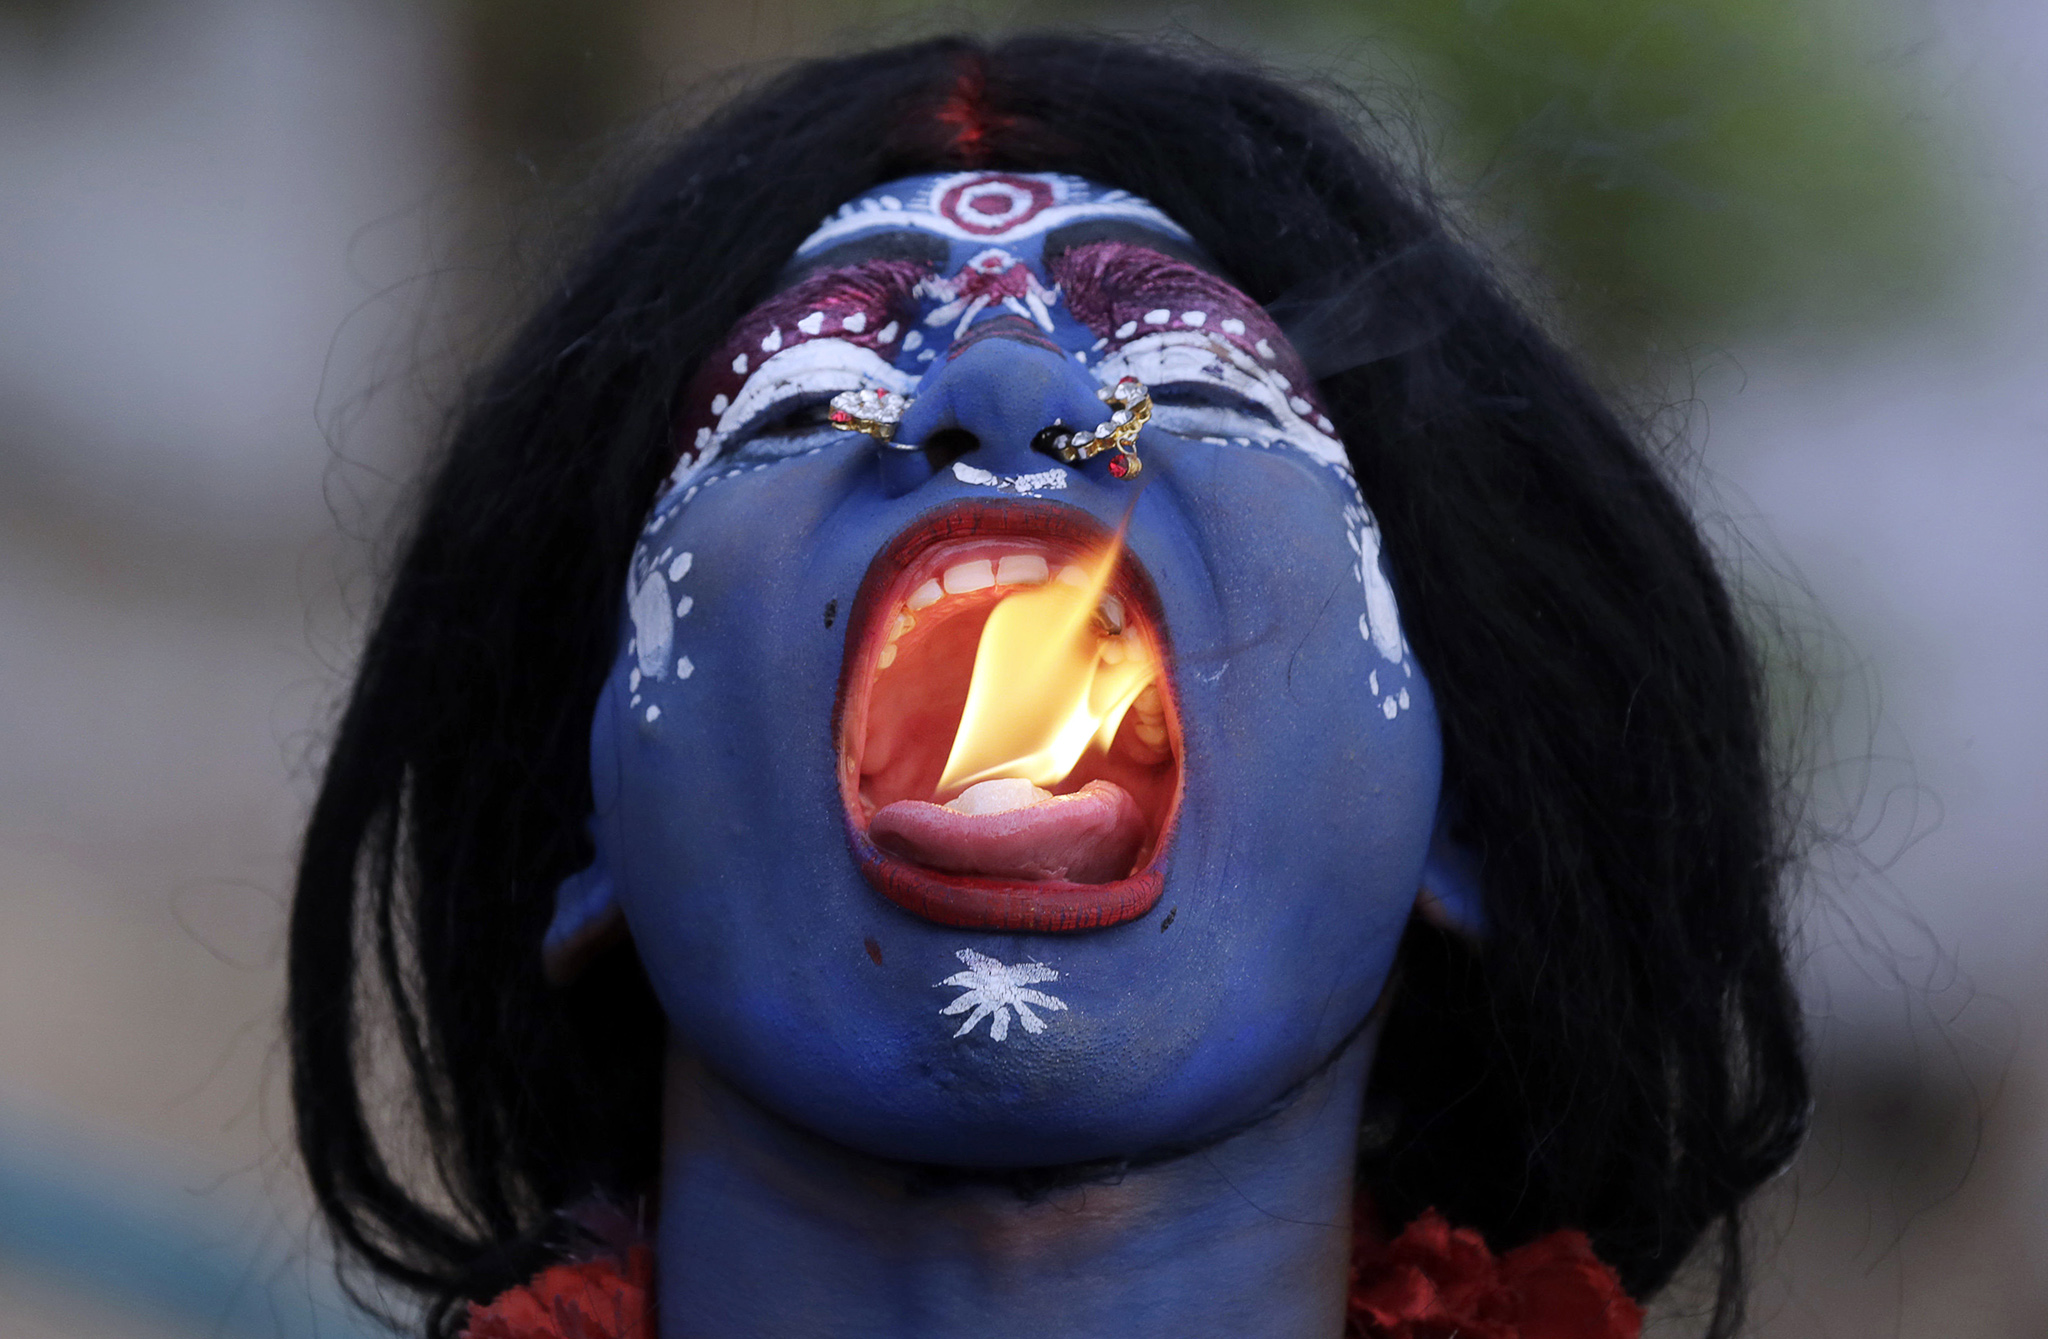 An Indian man dressed as Hindu Goddess Kali puts fire in his mouth during a procession to celebrate the Ram Navami festival in Allahabad, India